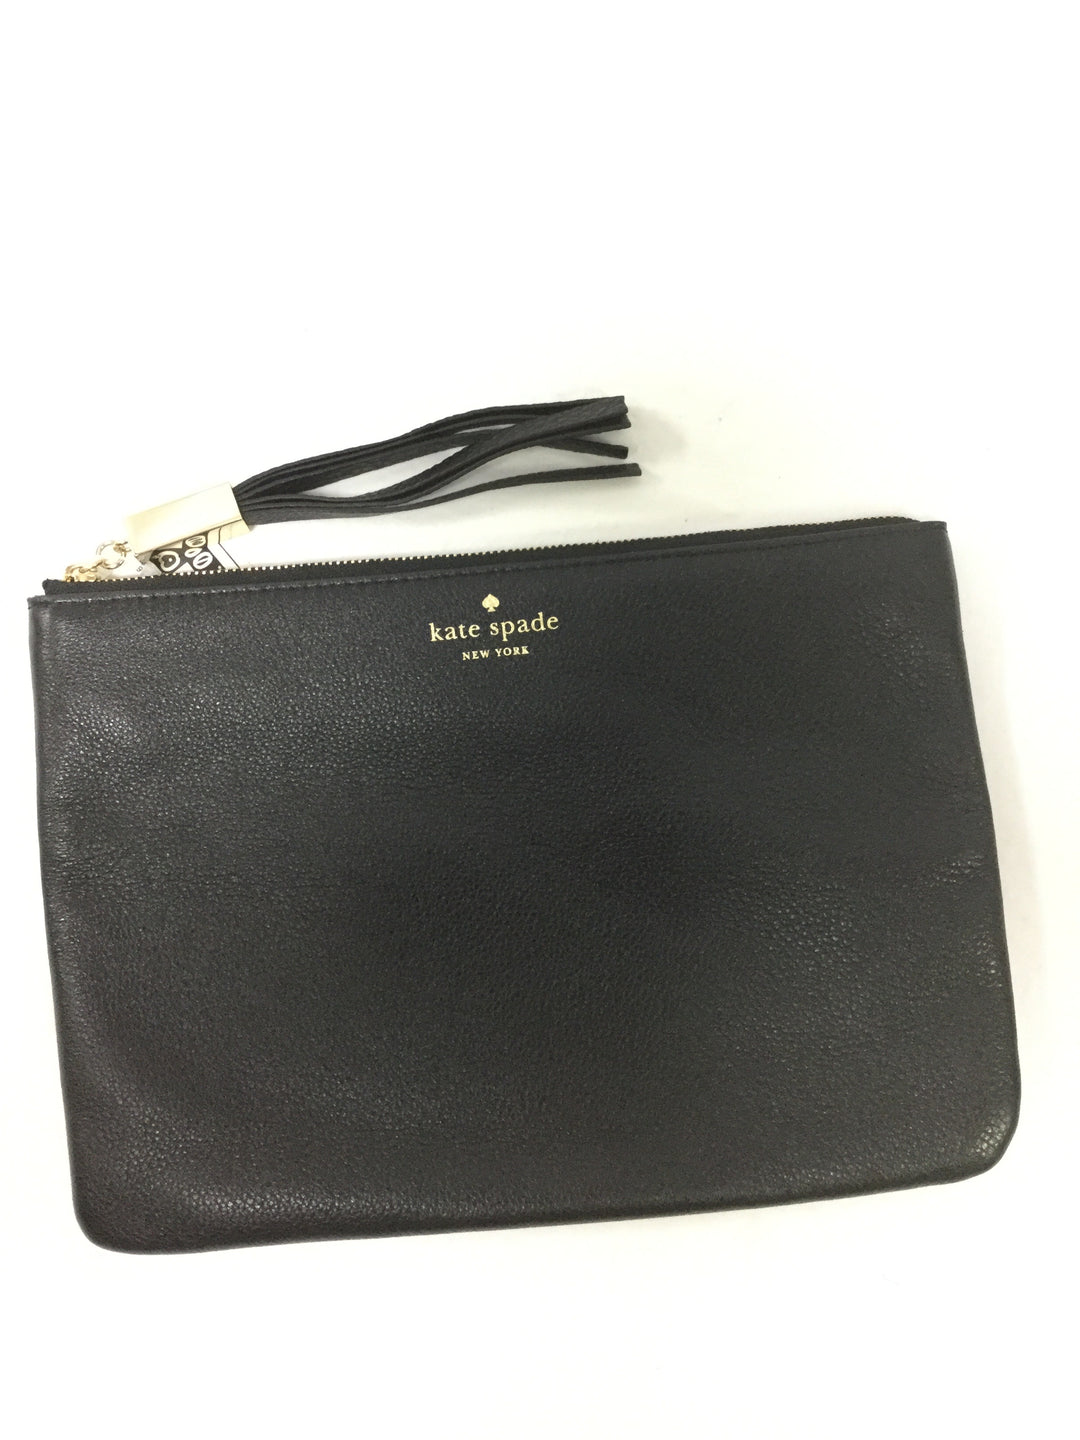 Primary Photo - BRAND: KATE SPADE <BR>STYLE: WRISTLET <BR>COLOR: BLACK <BR>SKU: 155-15599-231247